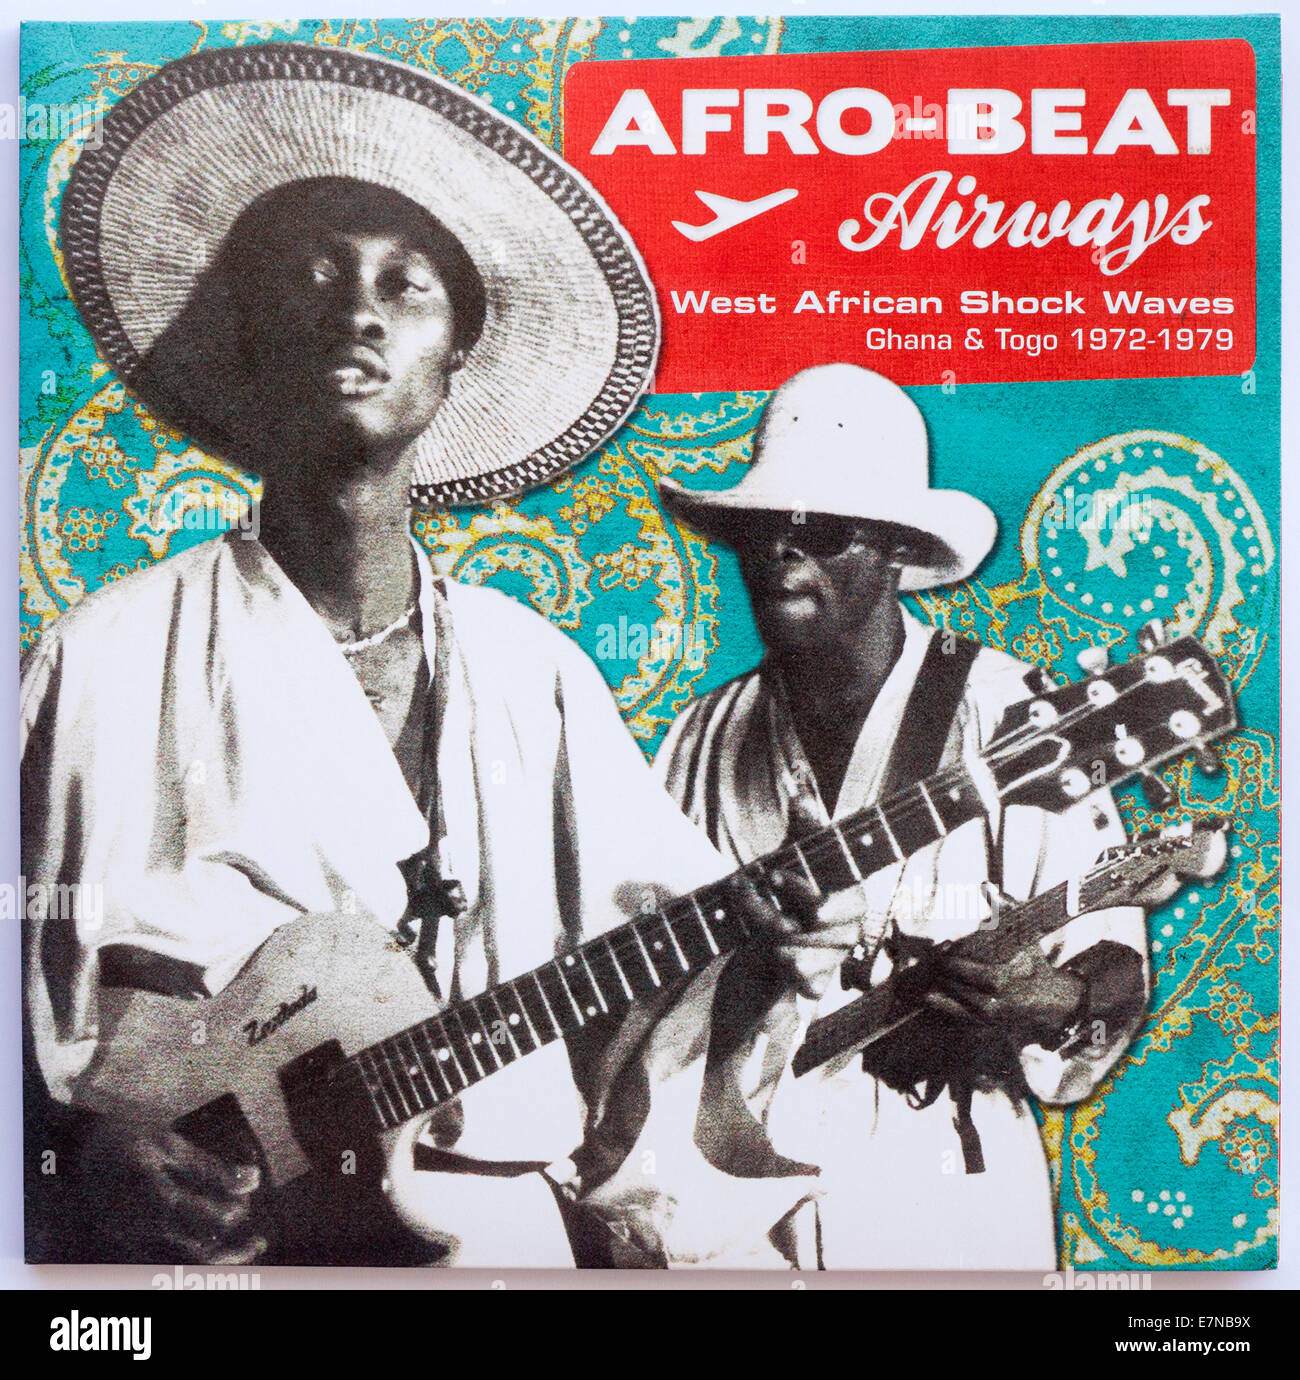 Afro-Beat Airways - West African Shock Waves Ghana & Togo 1972-1979 - 2010 double album on Analog Africa Records. - Stock Image